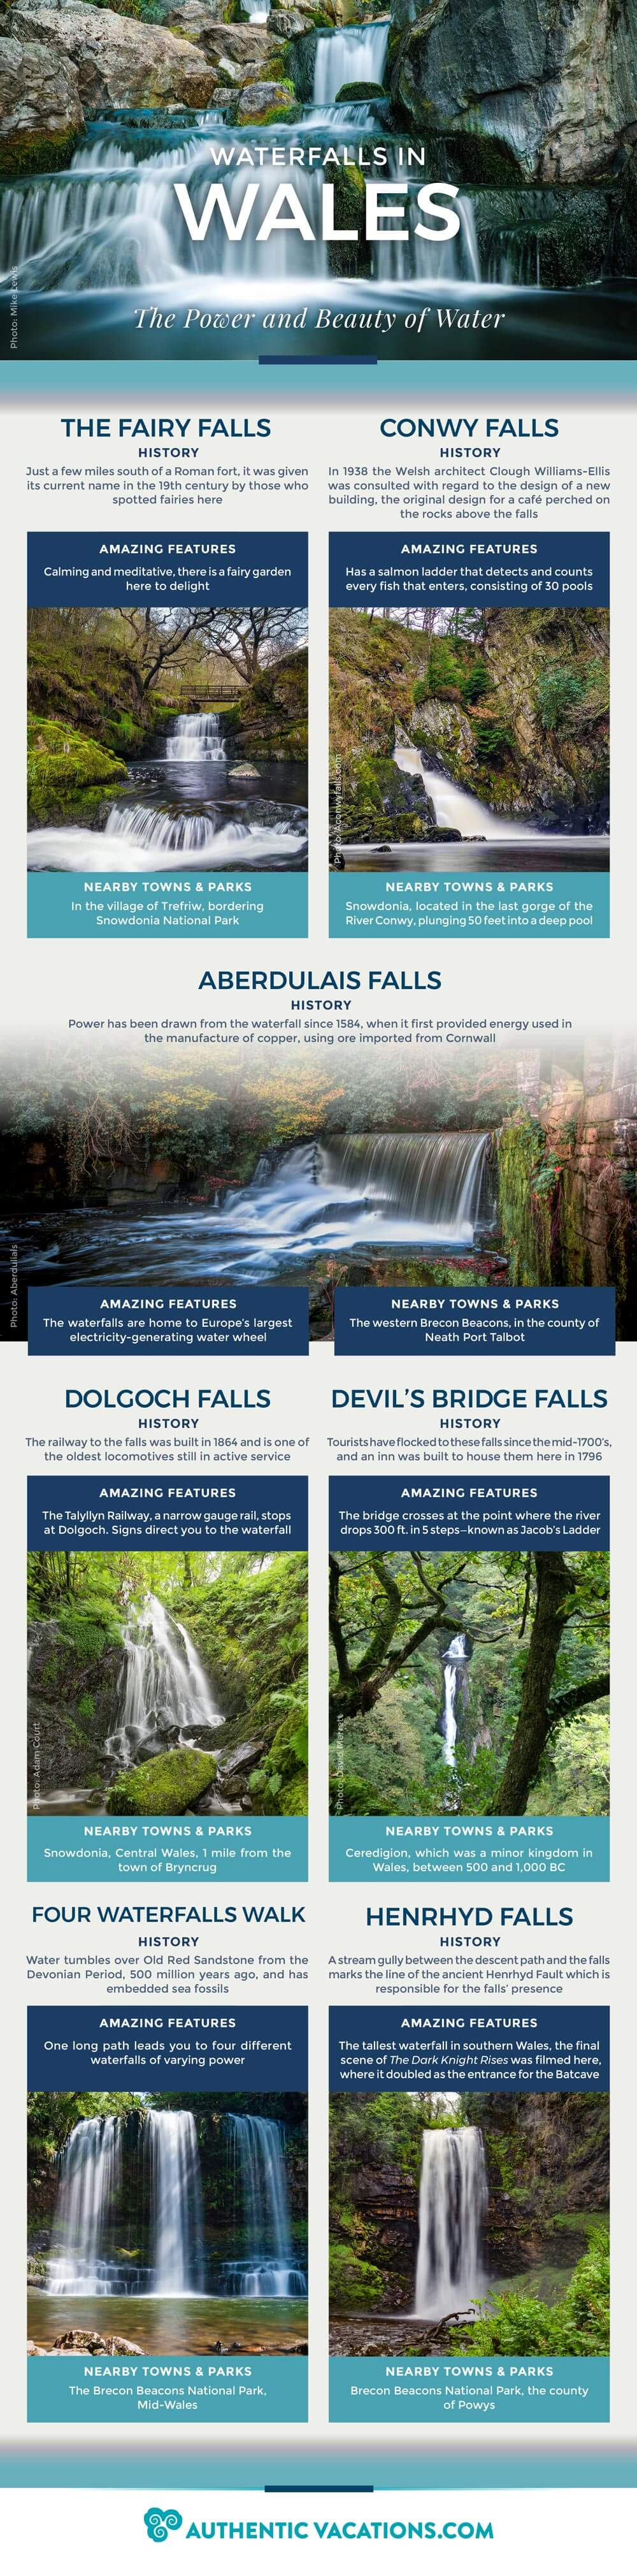 Waterfalls to Discover in Wales